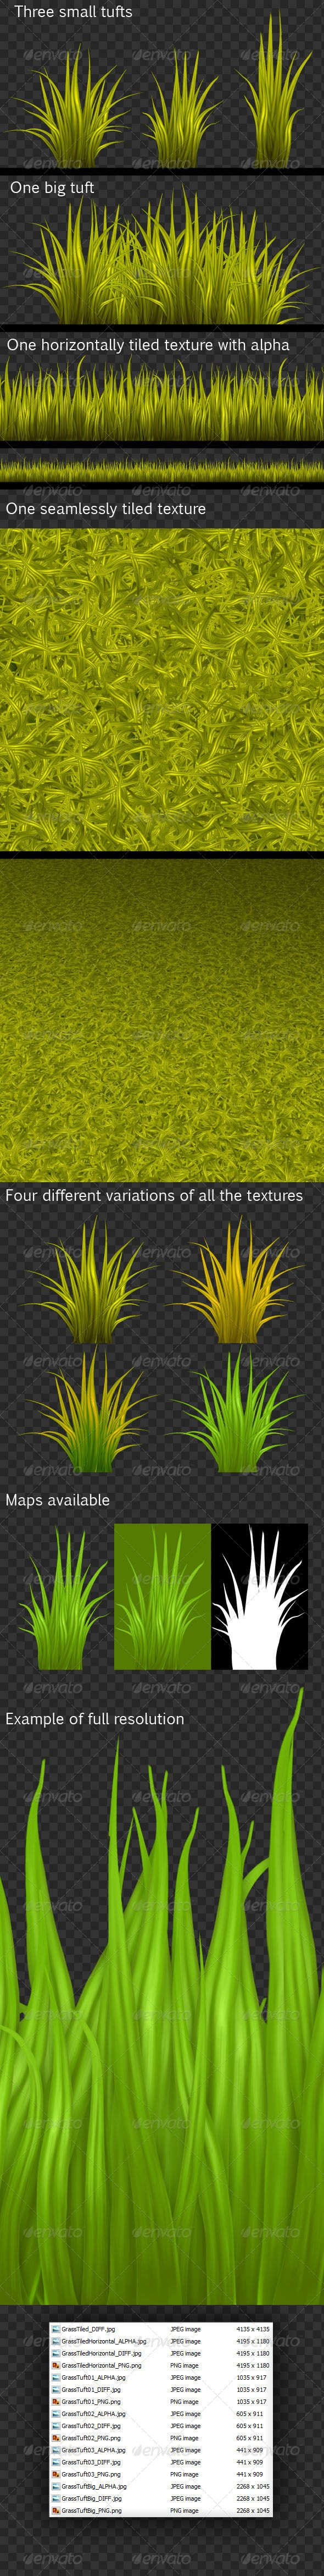 HQ Pack of Painted Grass Textures #3docean